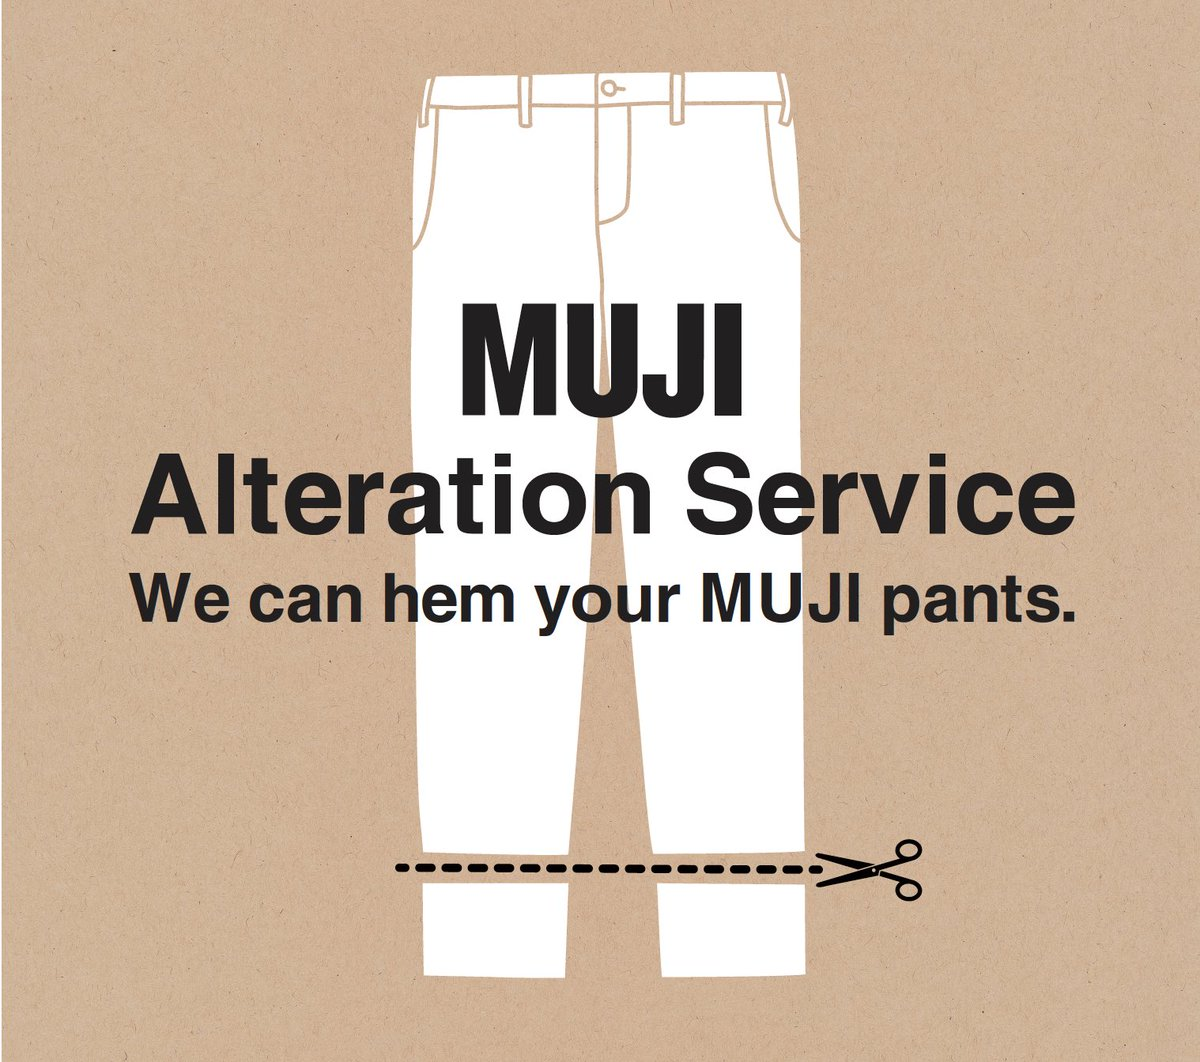 b348f632bff MUJI Third Street Promenade will be the first on the West Coast to offer  Alteration Services for MUJI pants and Embroidery Services with over 300 ...